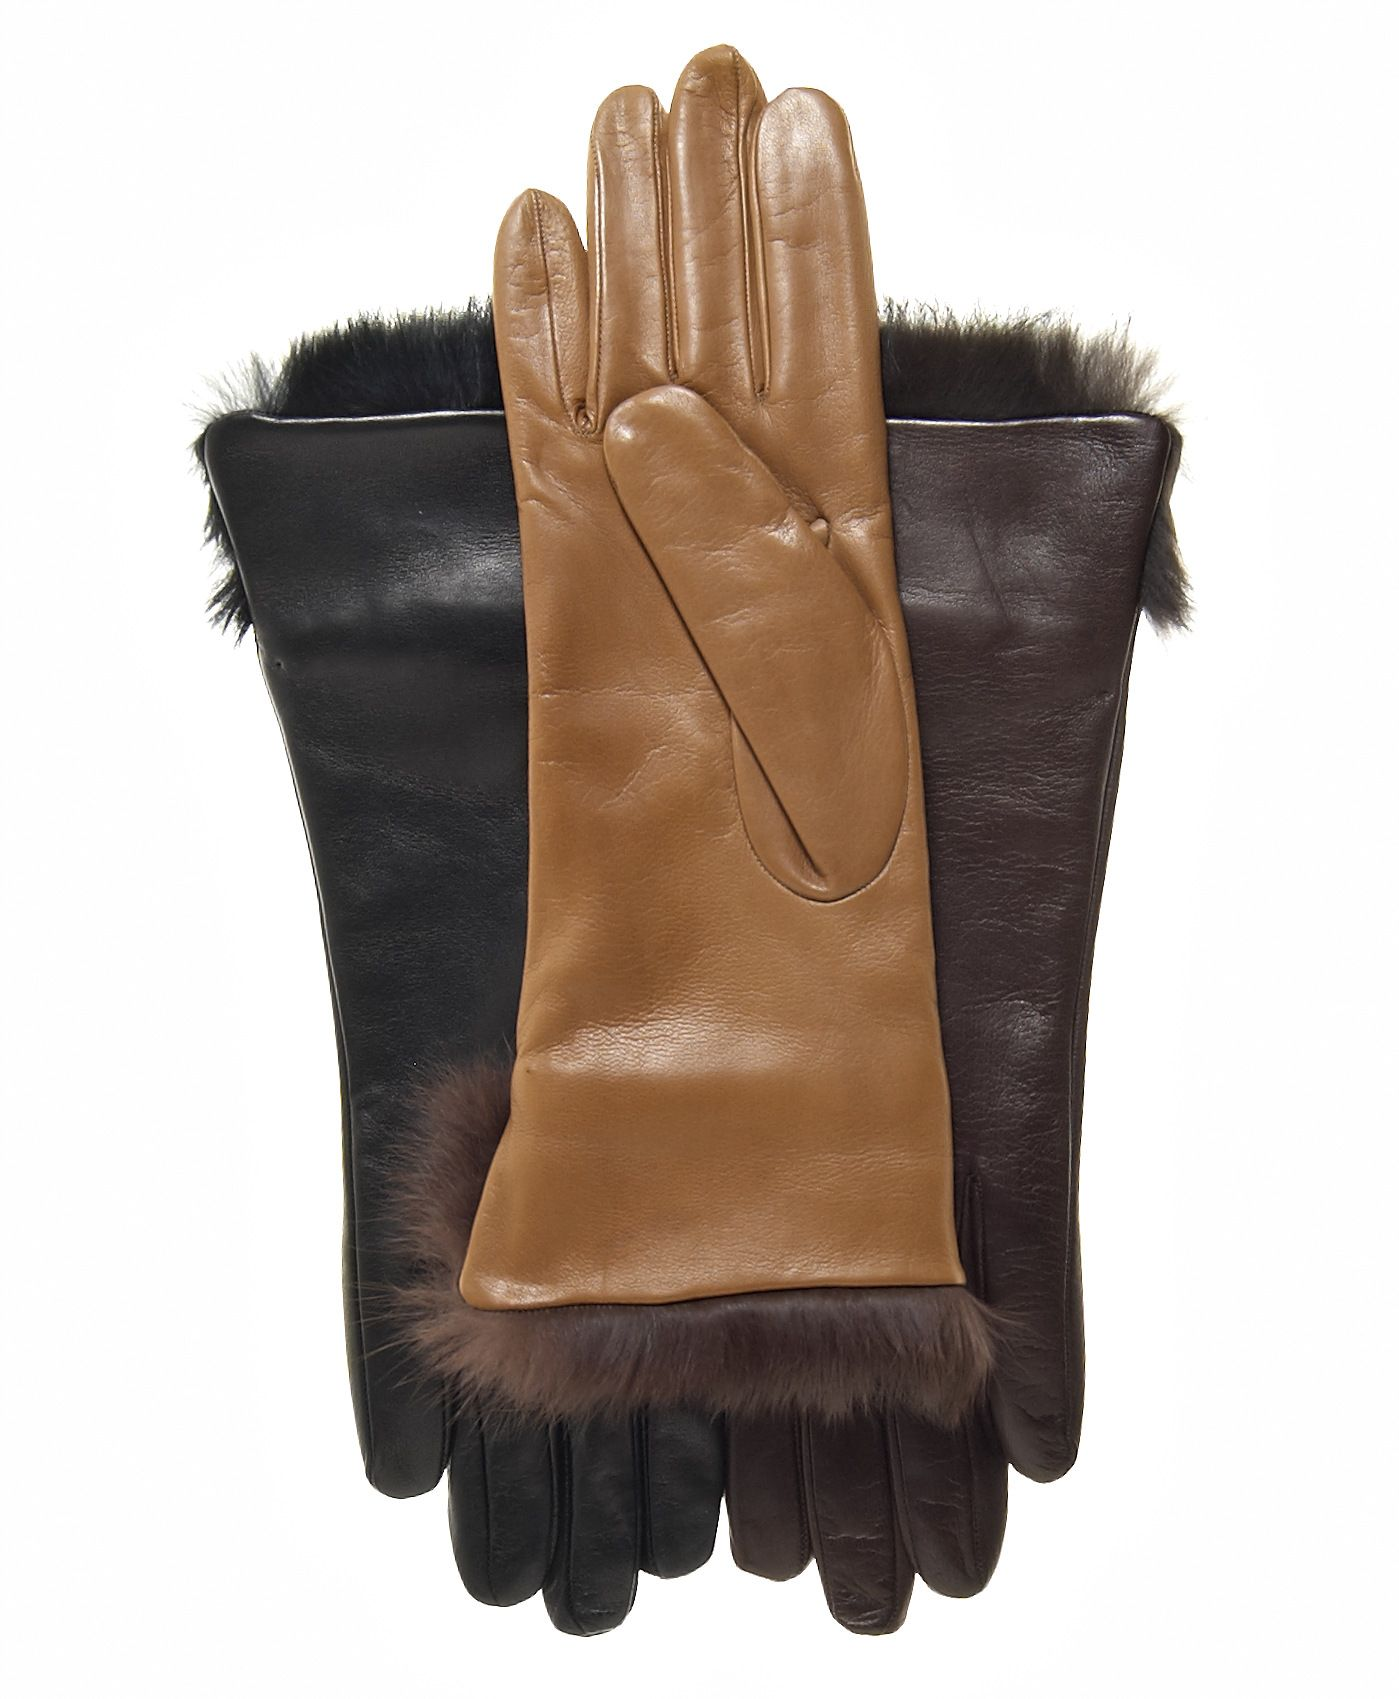 Mens leather gloves tj hughes - Women S Italian Rabbit Fur Cuff Winter Leather Gloves By Fratelli Orsini Free Usa Shipping